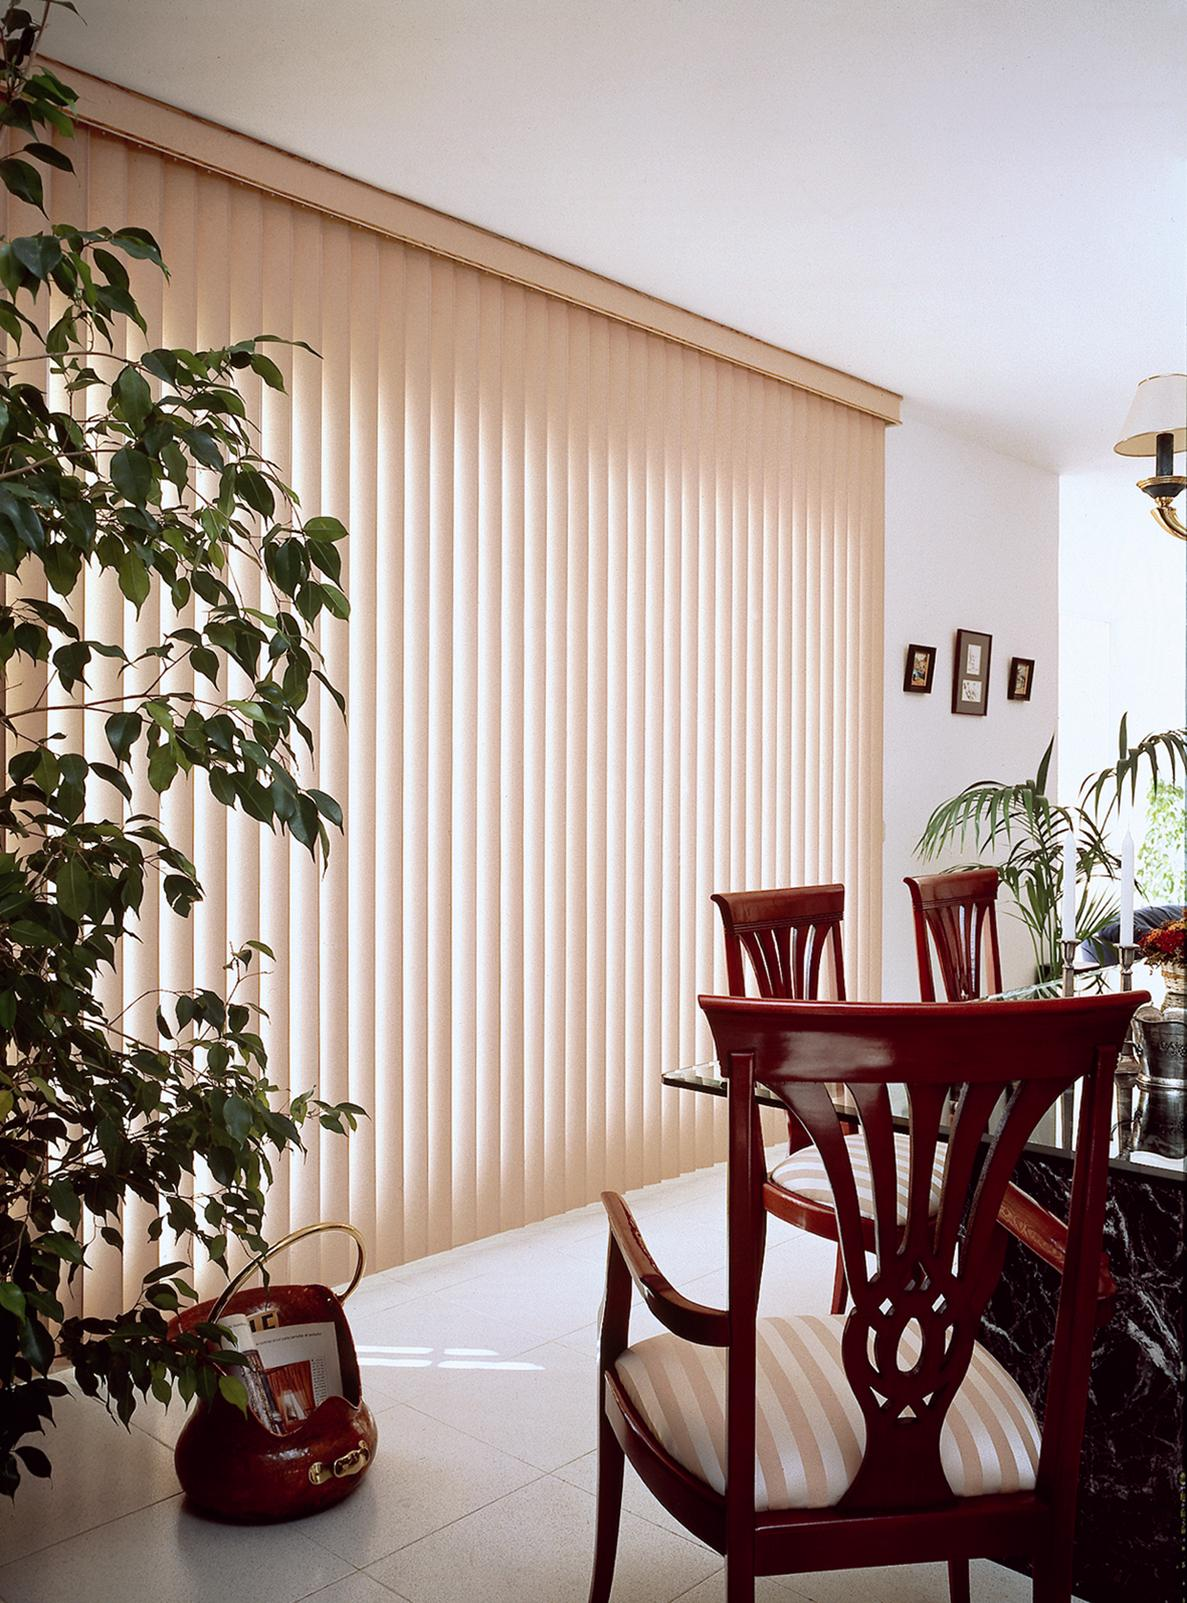 Vertical Blinds Pvc in Designs